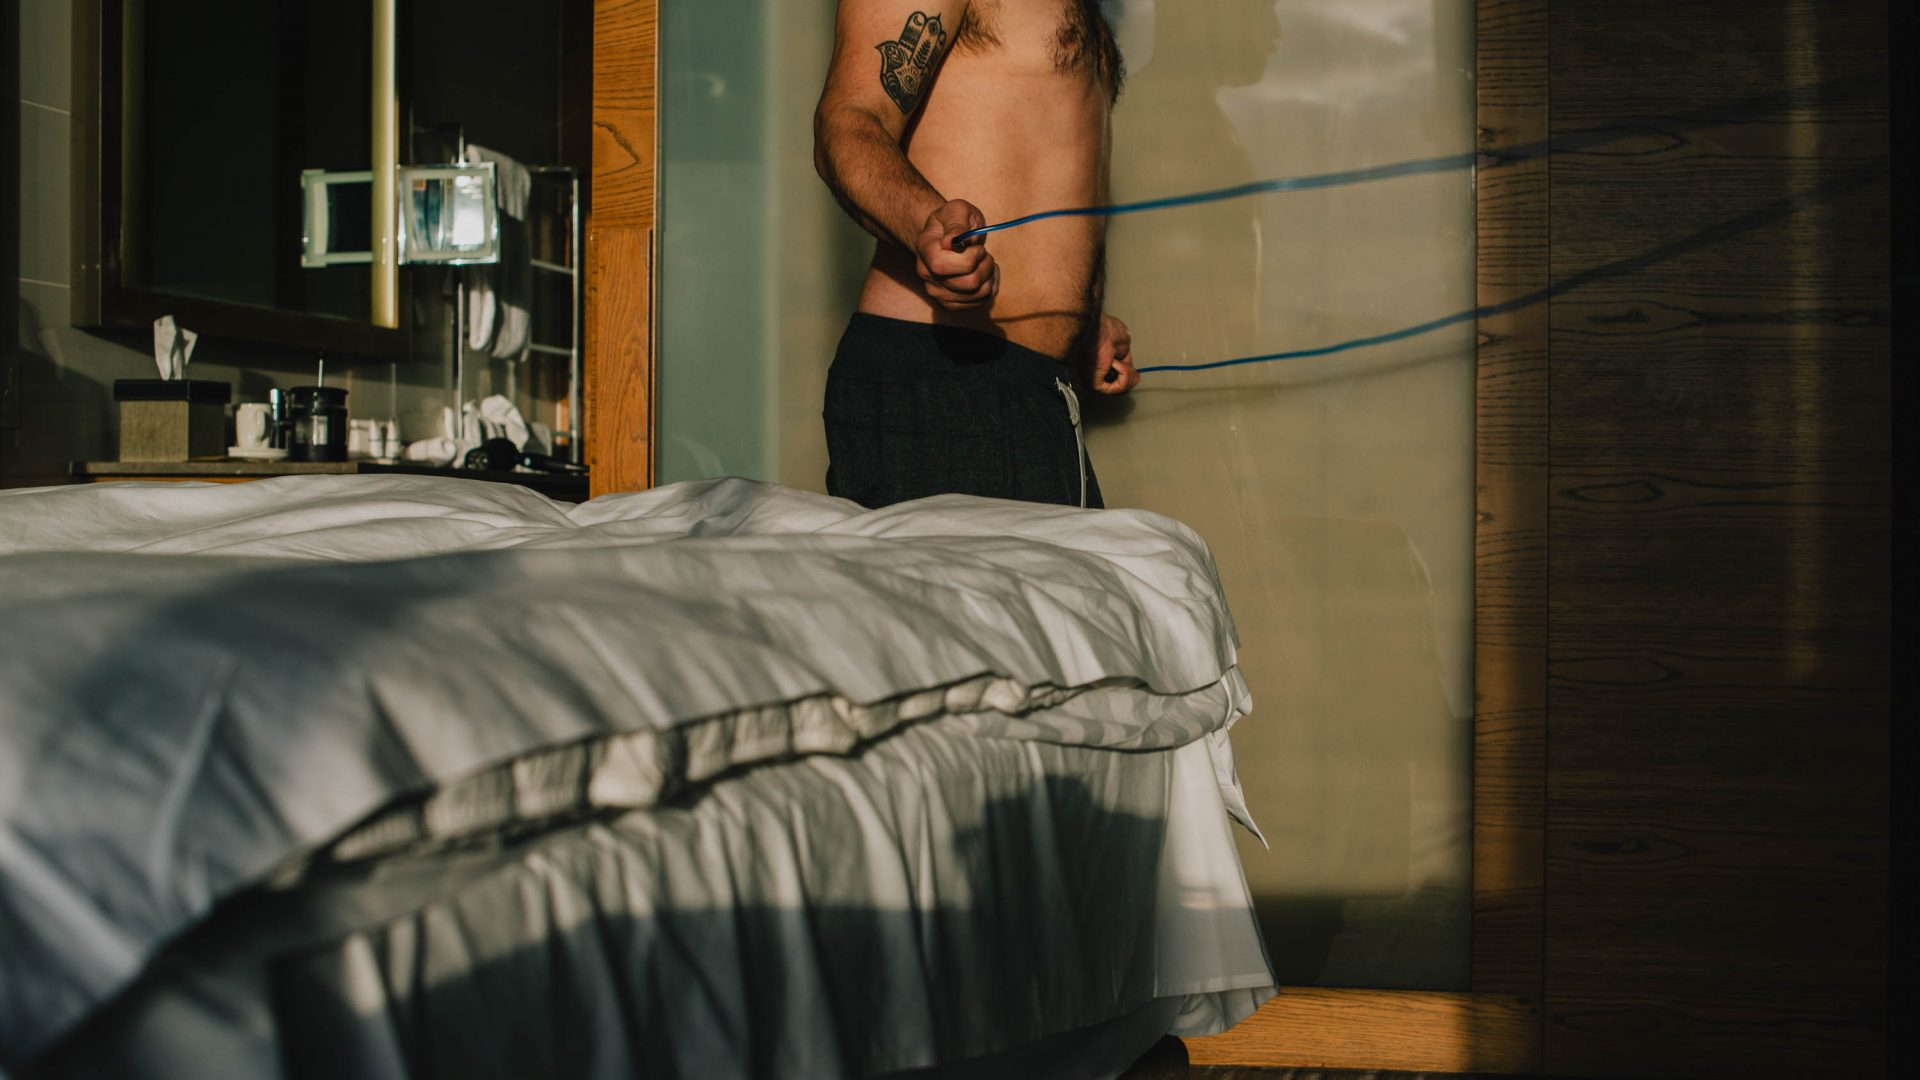 A mans body is seen exercising next to a bed.